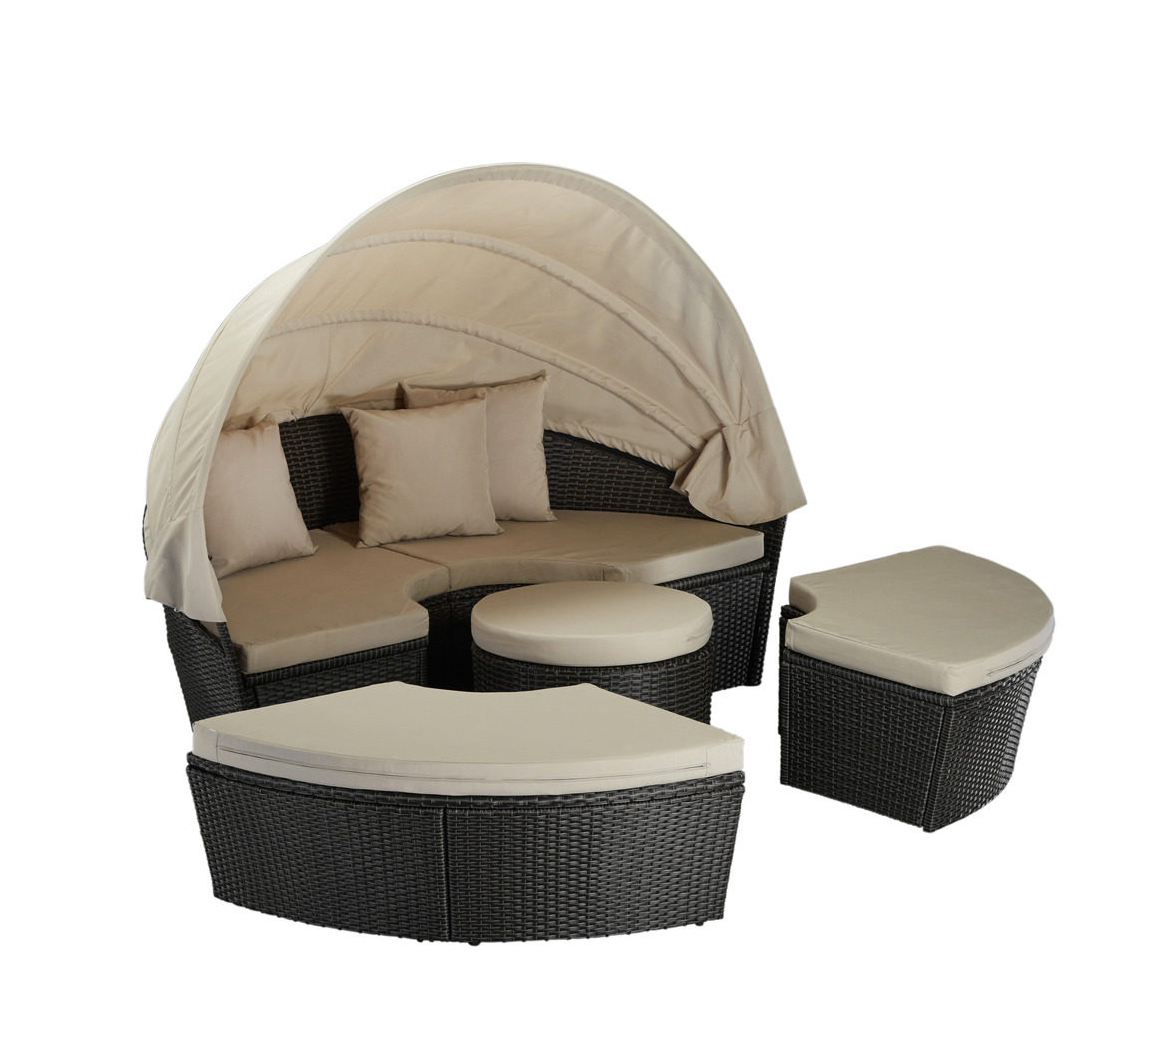 loungebett gartenlounge sitzgruppe dach auflagen. Black Bedroom Furniture Sets. Home Design Ideas